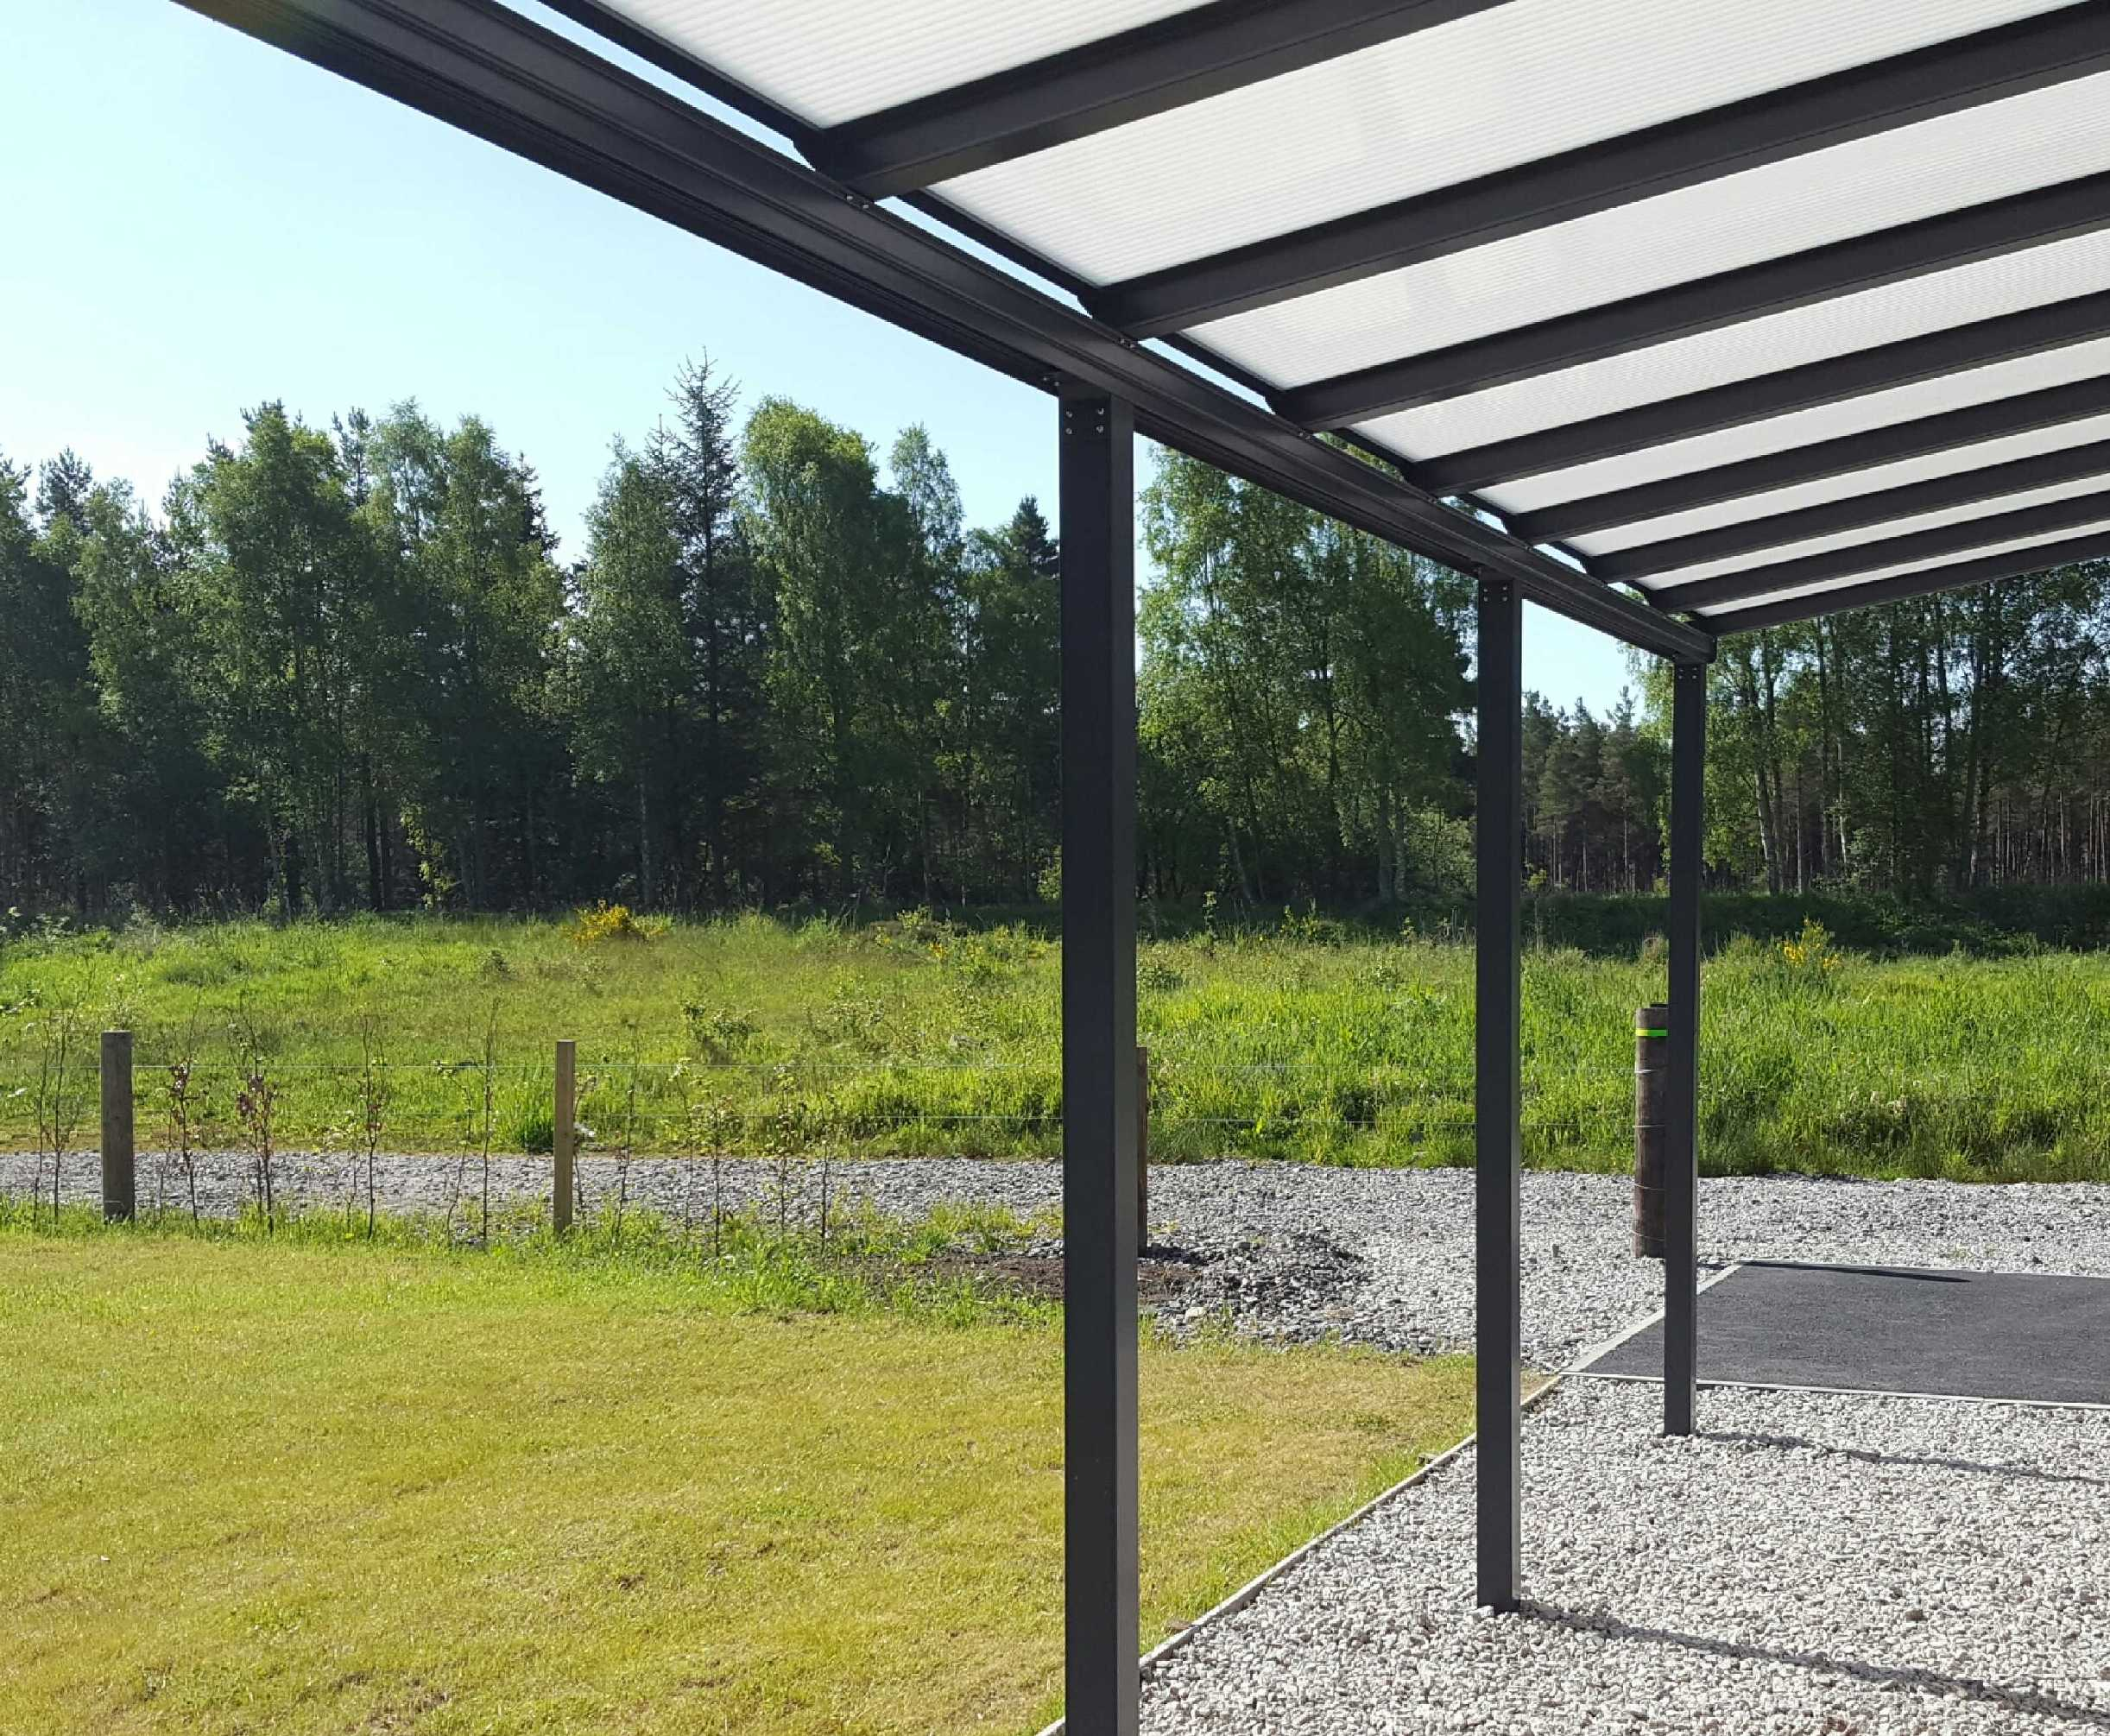 Omega Smart Lean-To Canopy, Anthracite Grey, 16mm Polycarbonate Glazing - 4.2m (W) x 3.5m (P), (3) Supporting Posts